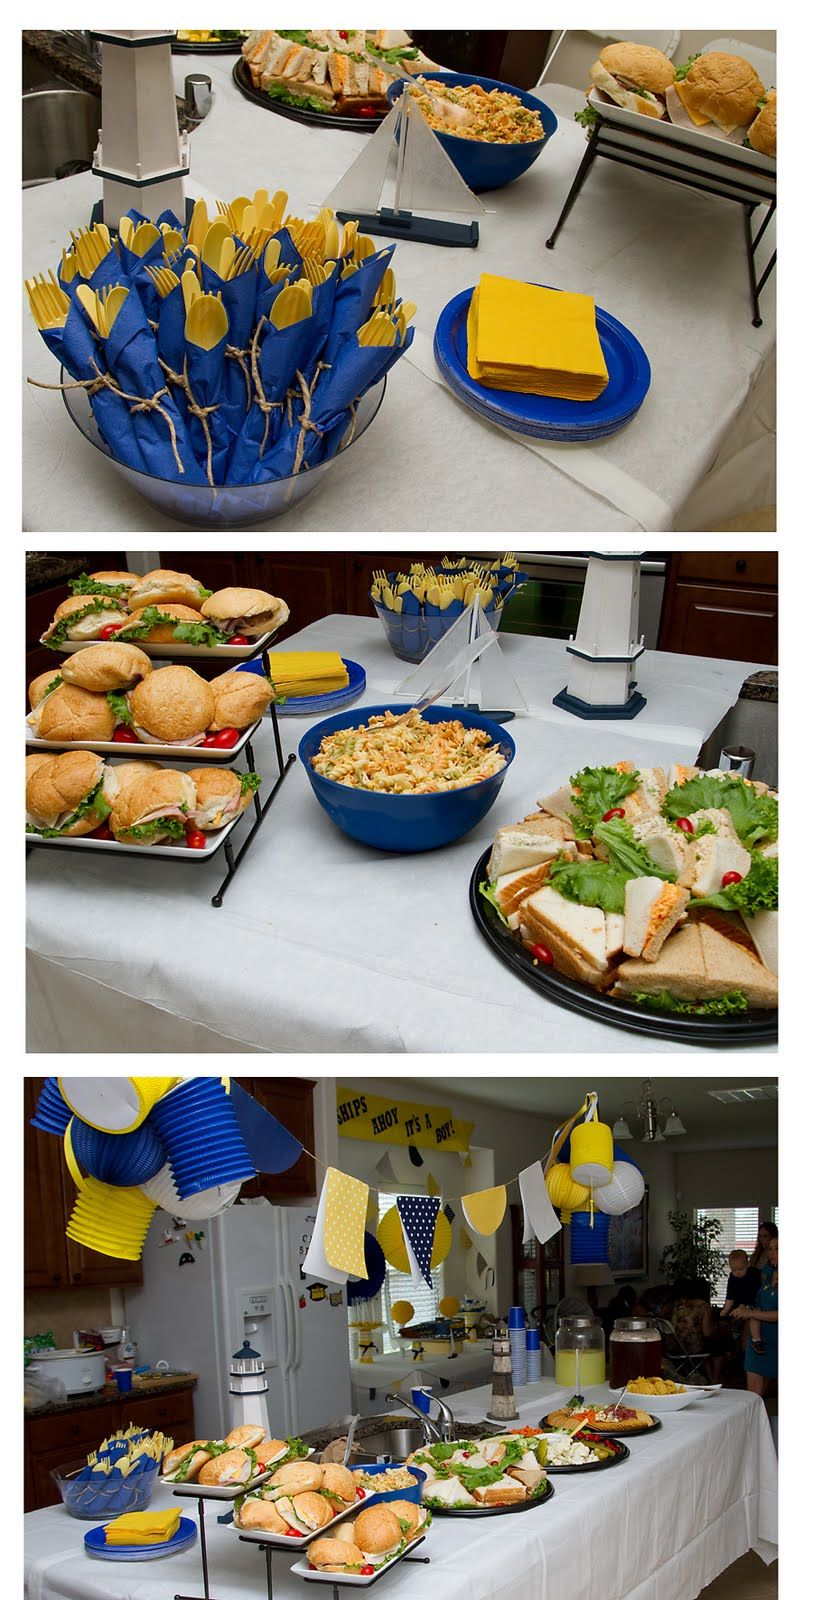 Life in print: A Navy, White & Yellow Nautical Baby Shower--Maybe do less yellow and add in some light blue    Lani: Similae color scheme